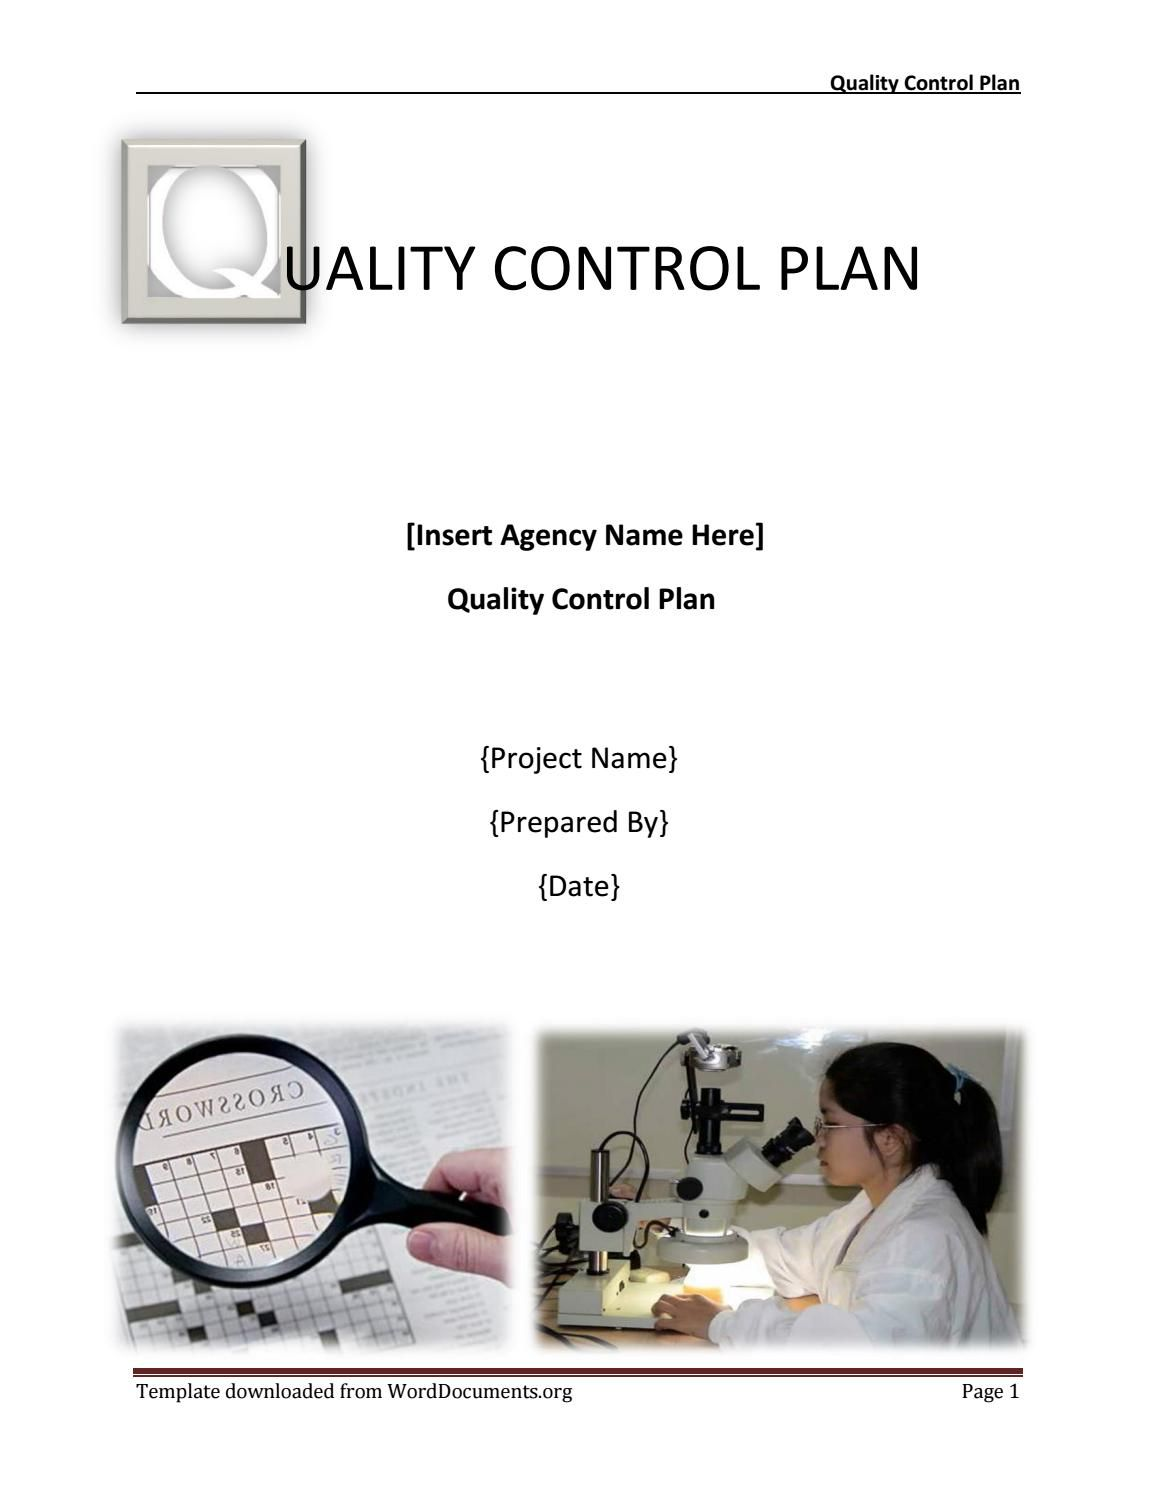 Quality Control Plan Template How To Plan Templates Website